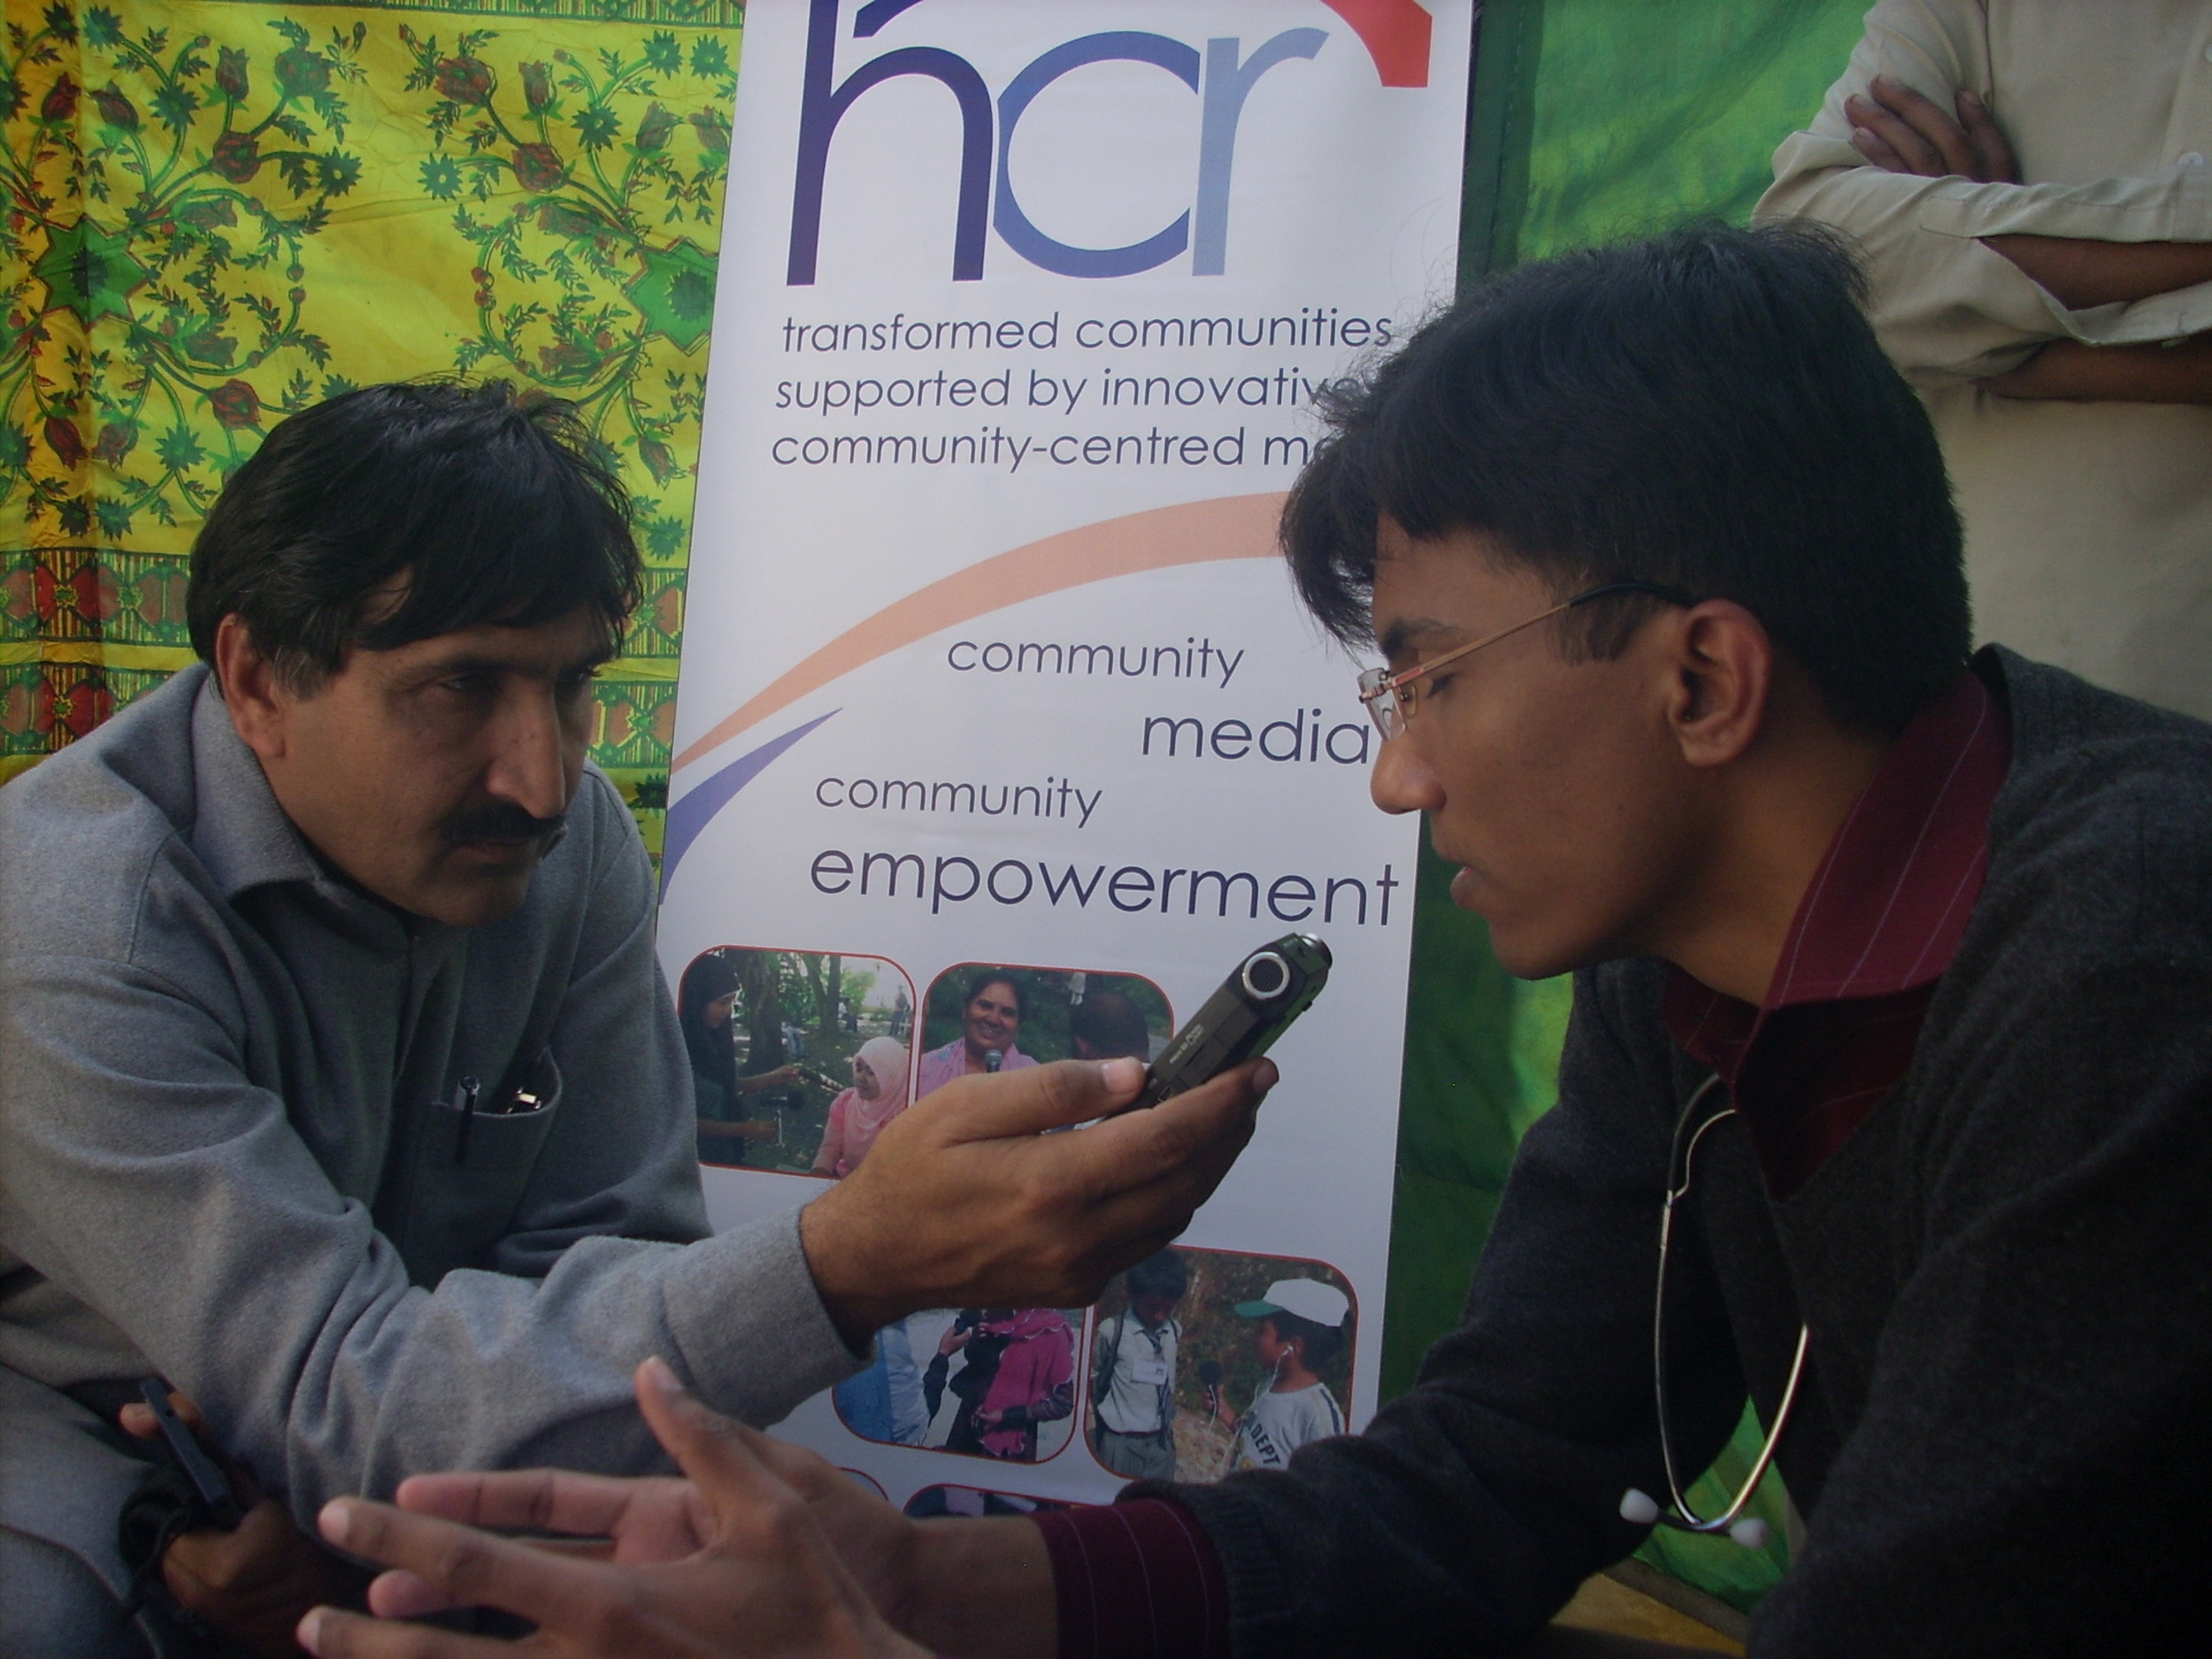 A journalist interviews one of the doctors during the camp for broadcast on local radio